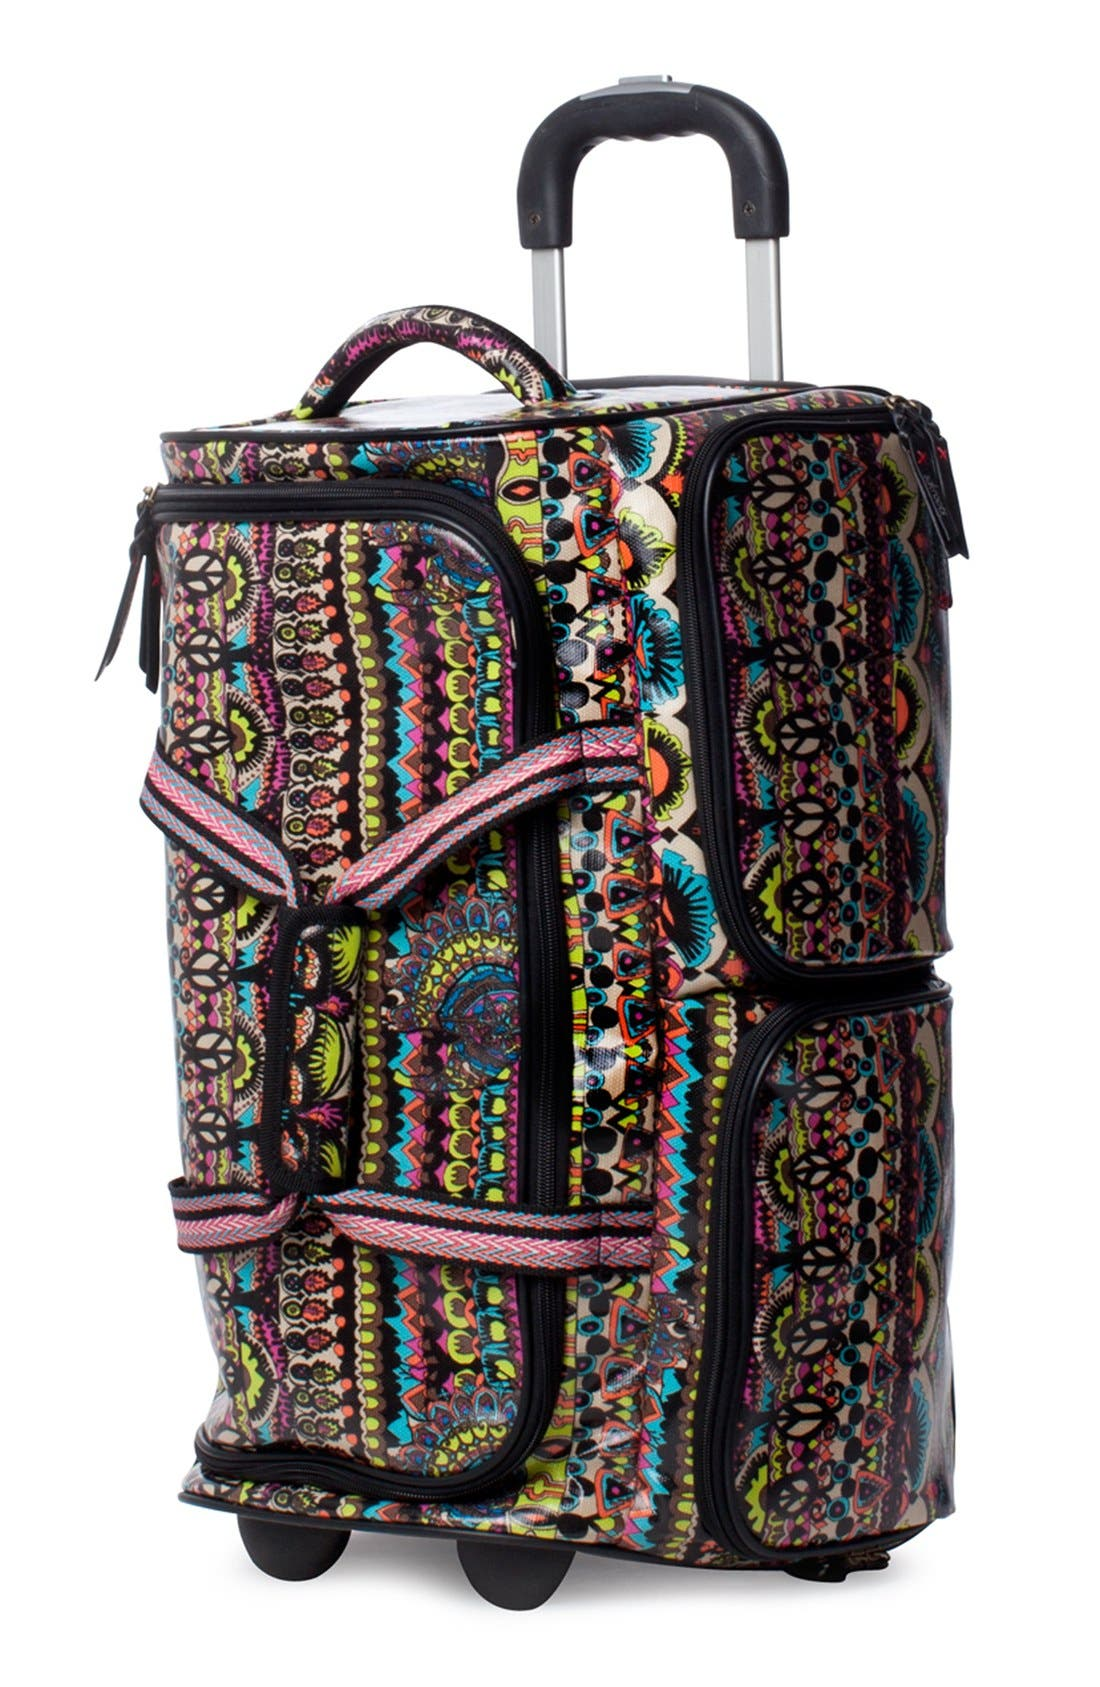 Main Image - Sakroots 'Artist Circle' Rolling Carry-On Duffel Bag (23 Inch)